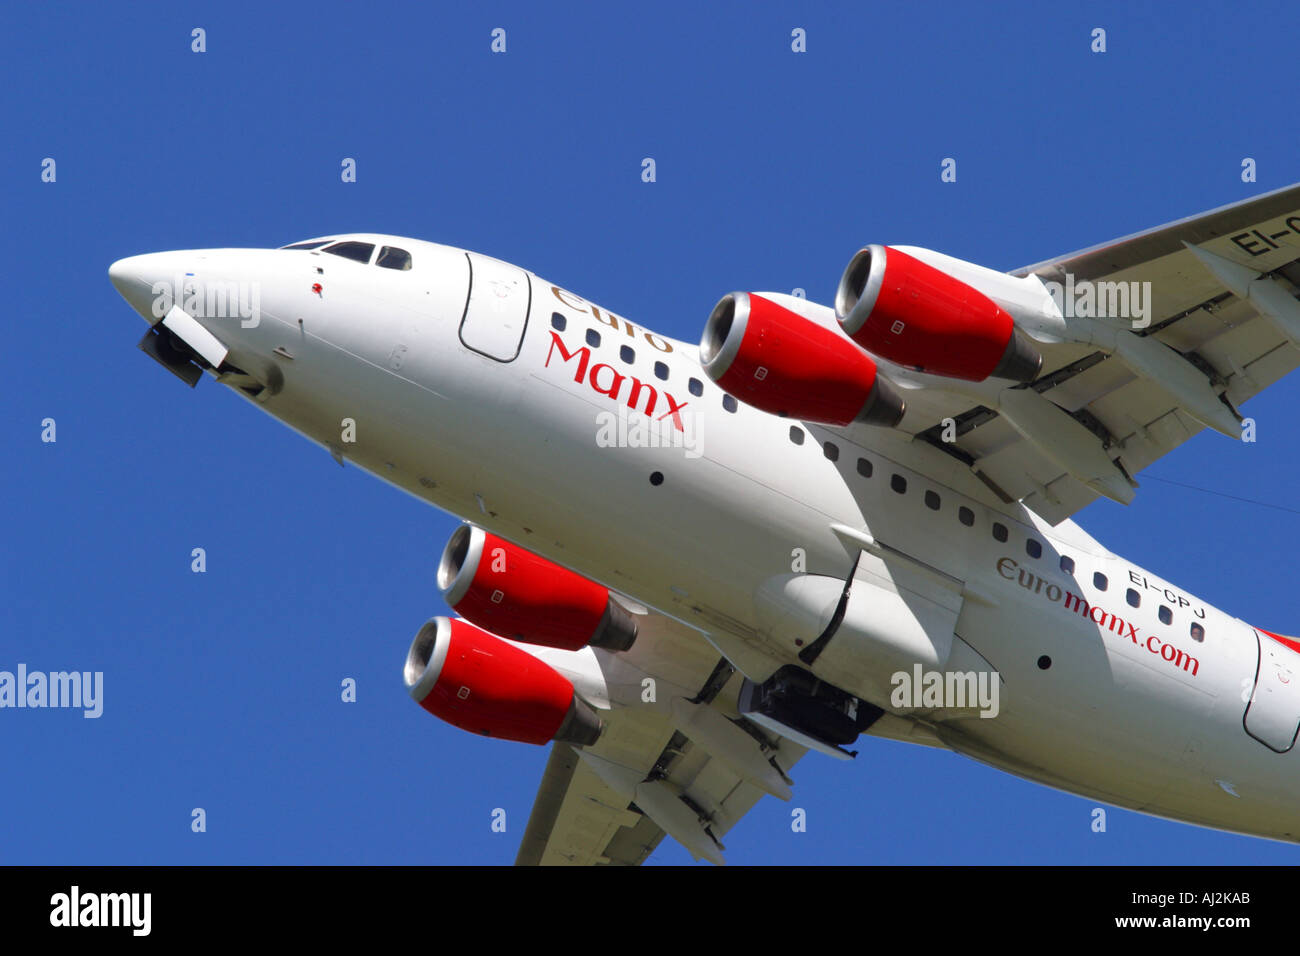 Euro Manx Bae 146 regional airliner from the Isle of Man taking off Stock Photo